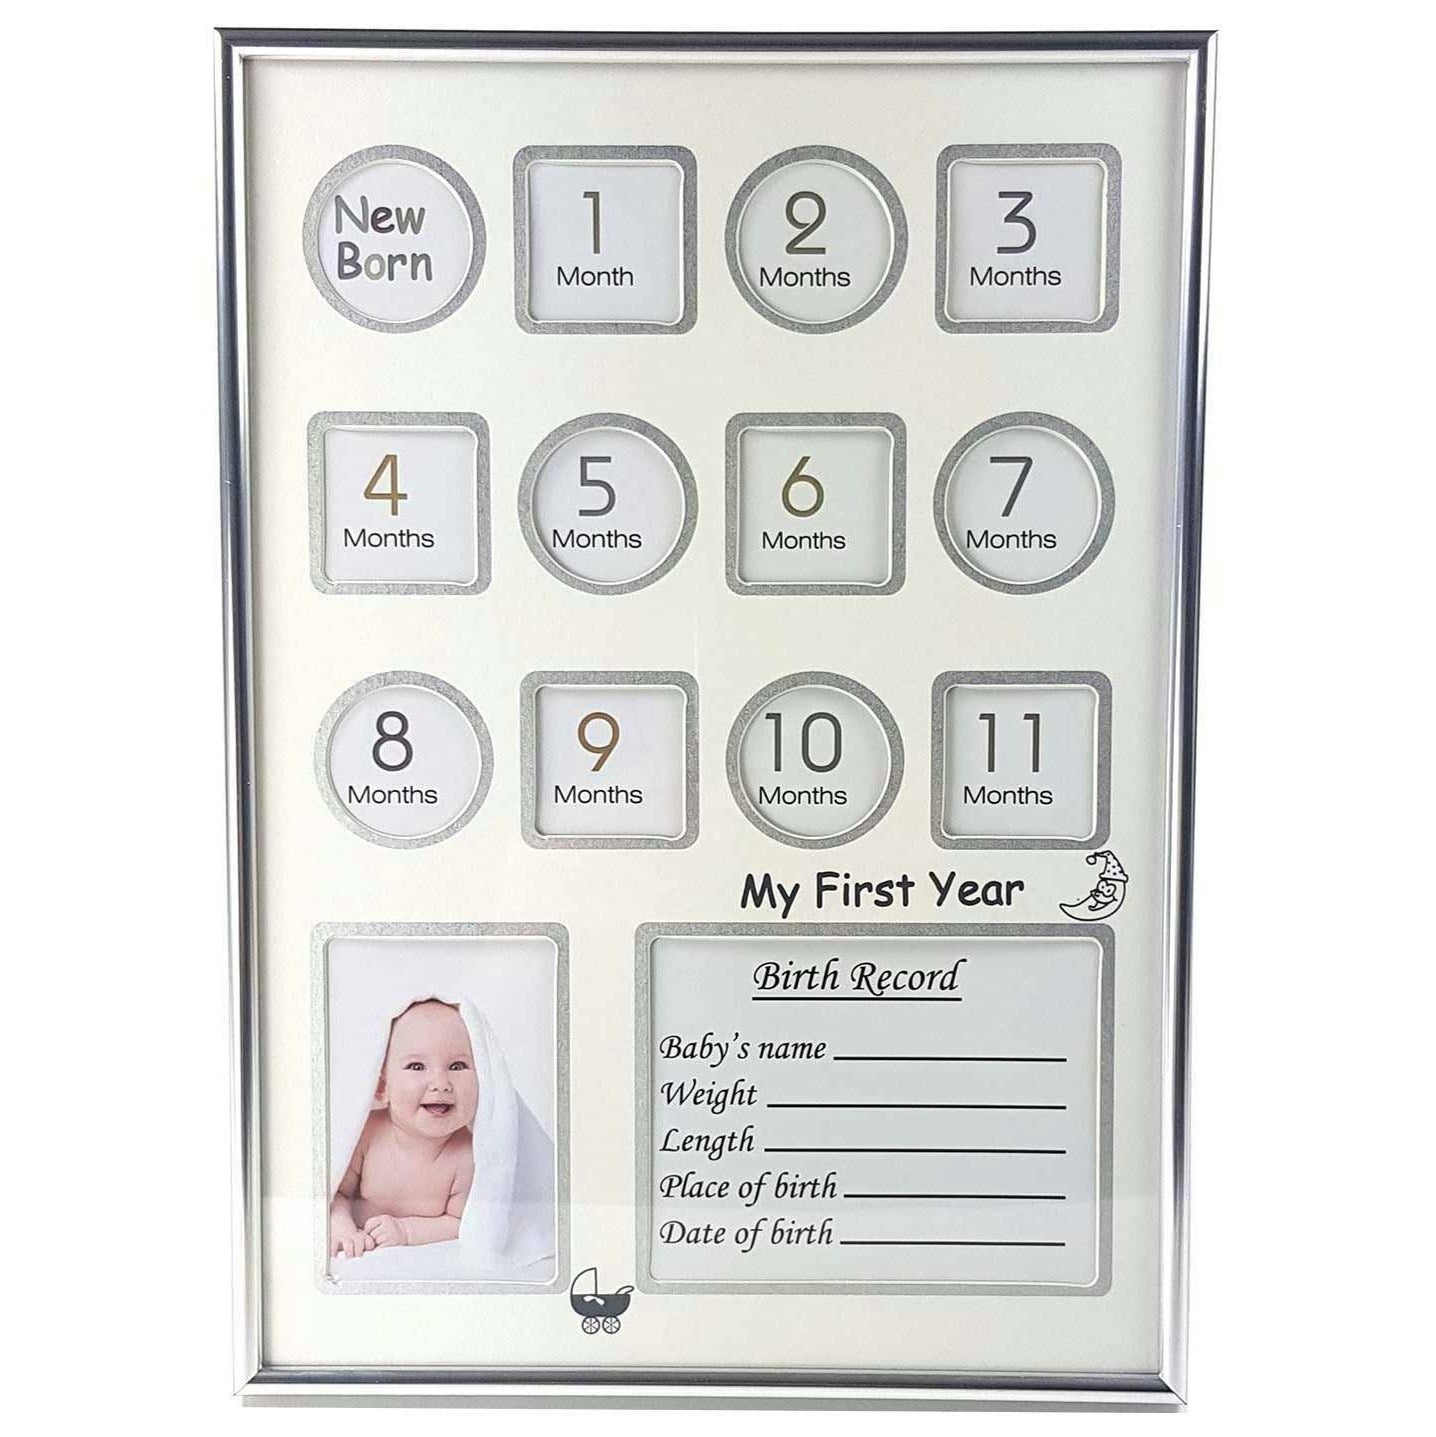 Baby's First Year & Birth Record Photo Frame Collage - Unisex